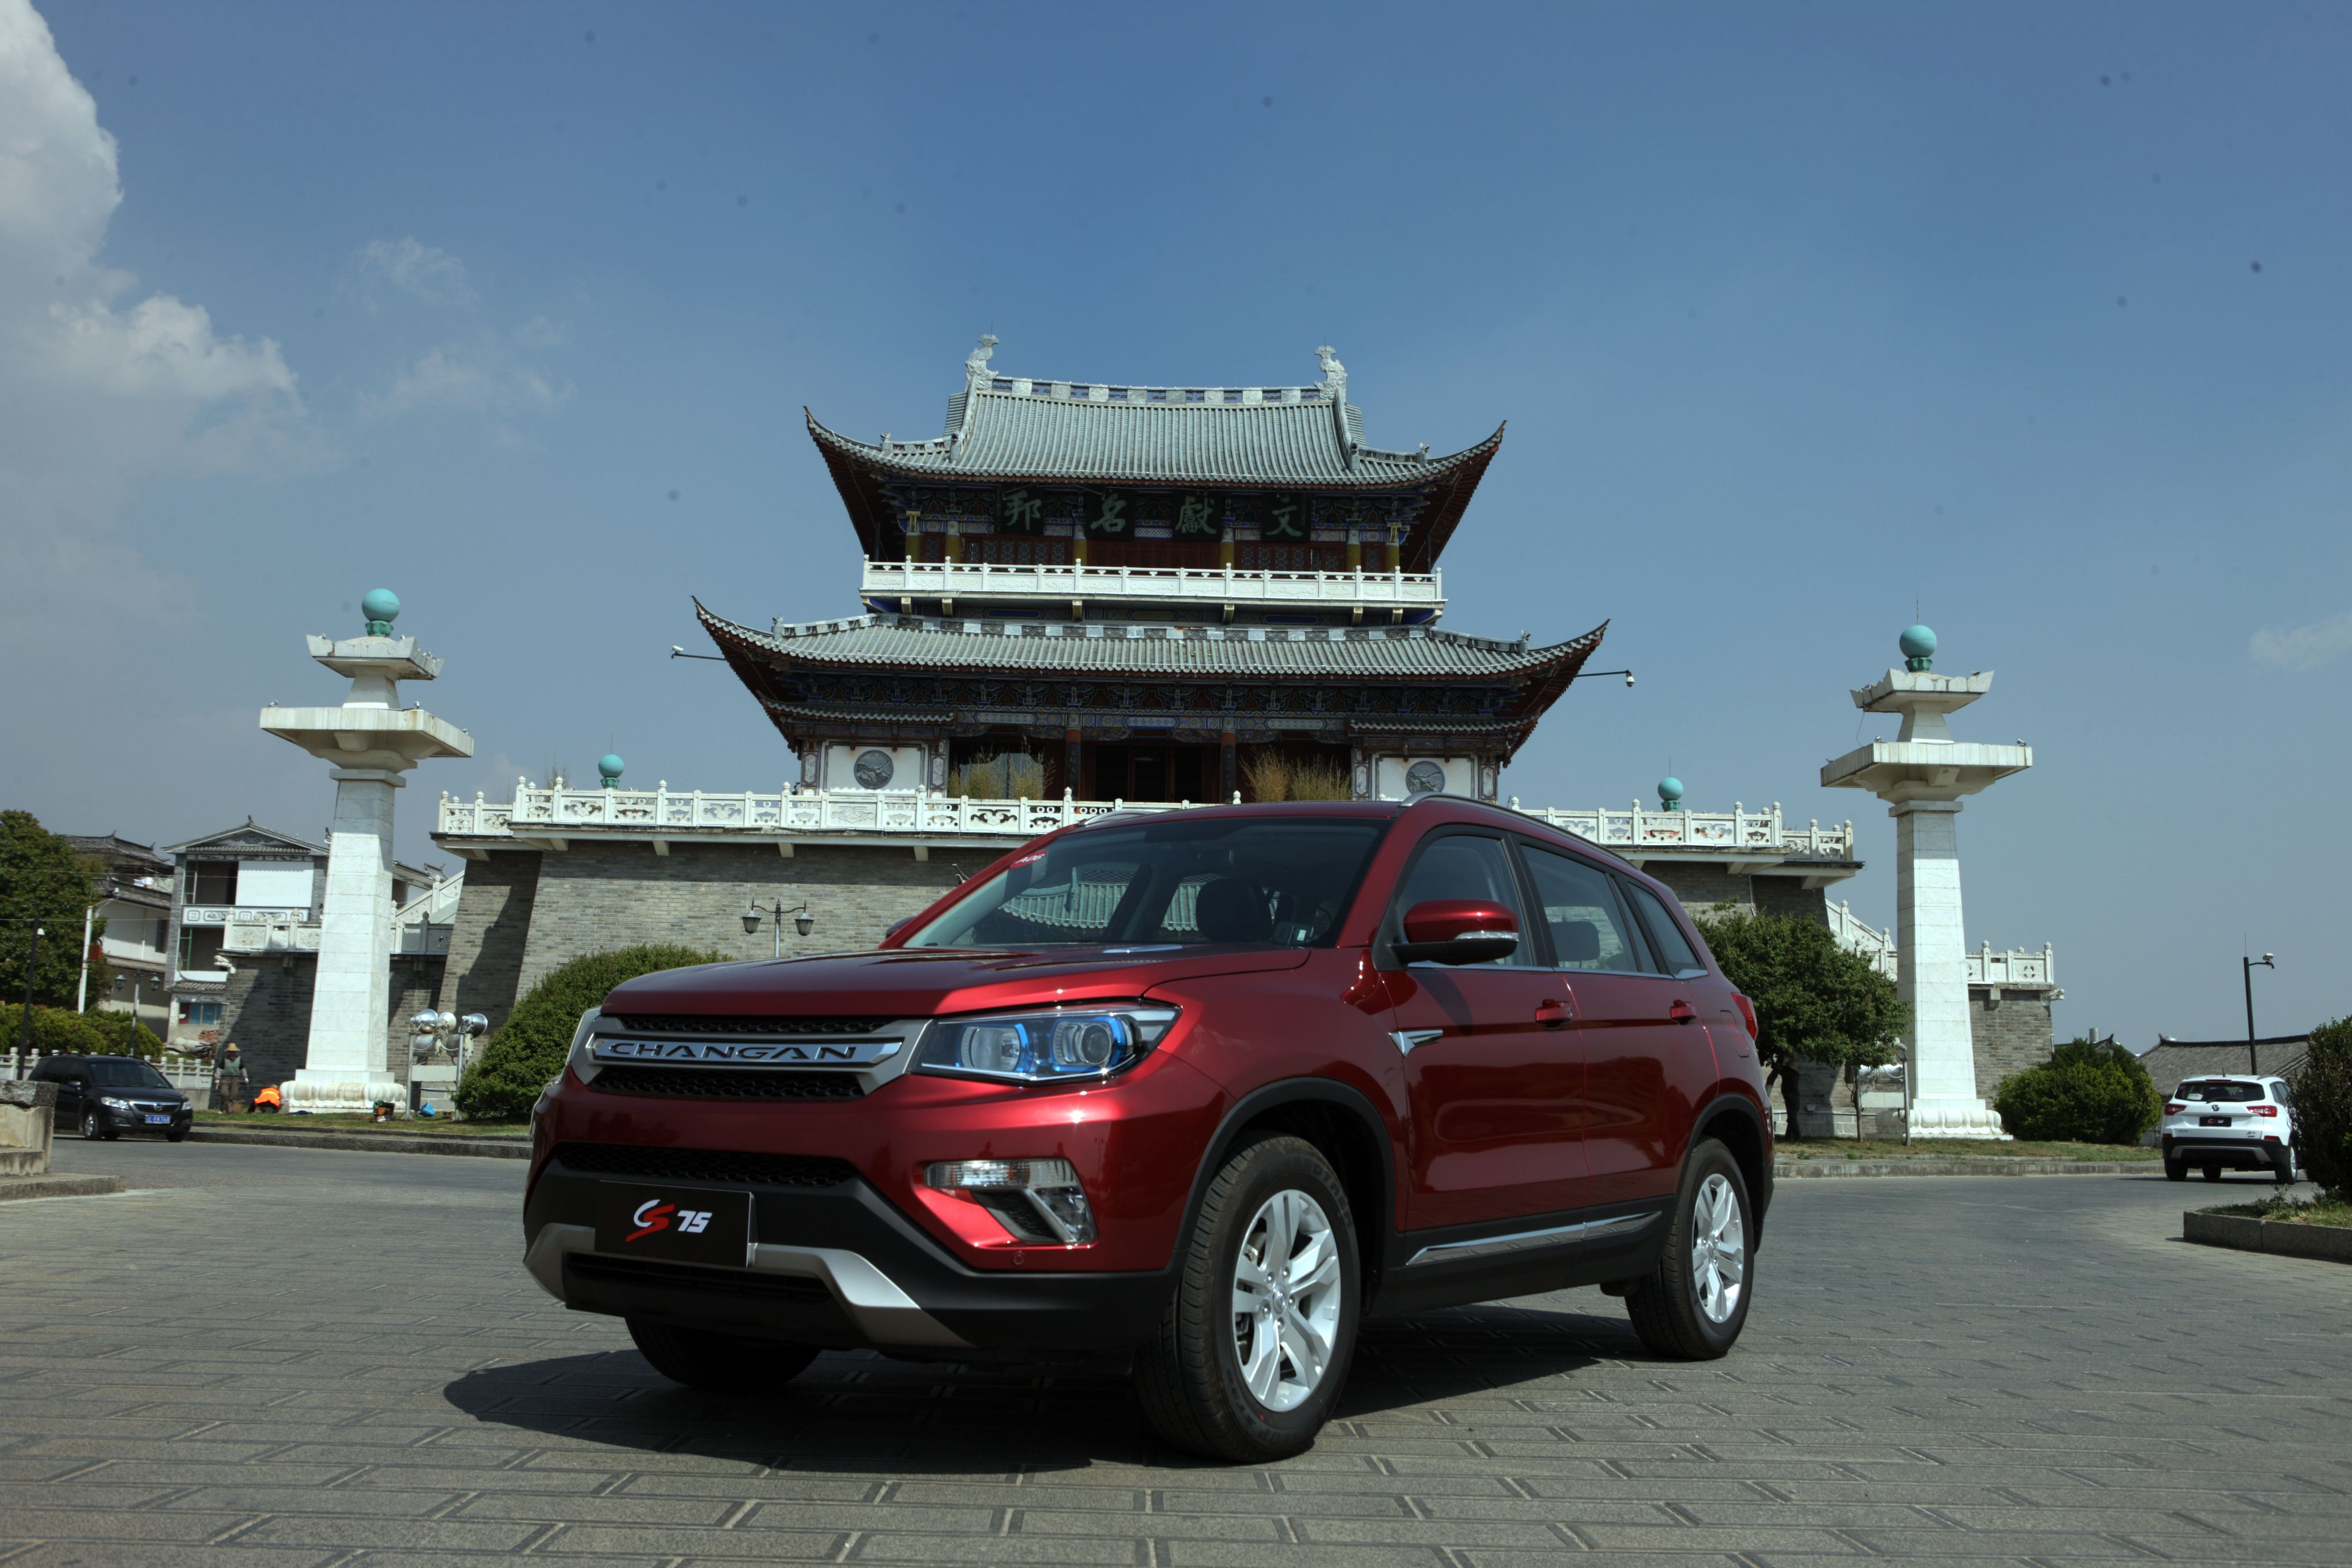 In The Show Changan Automobile Will Not Only Release New Brand